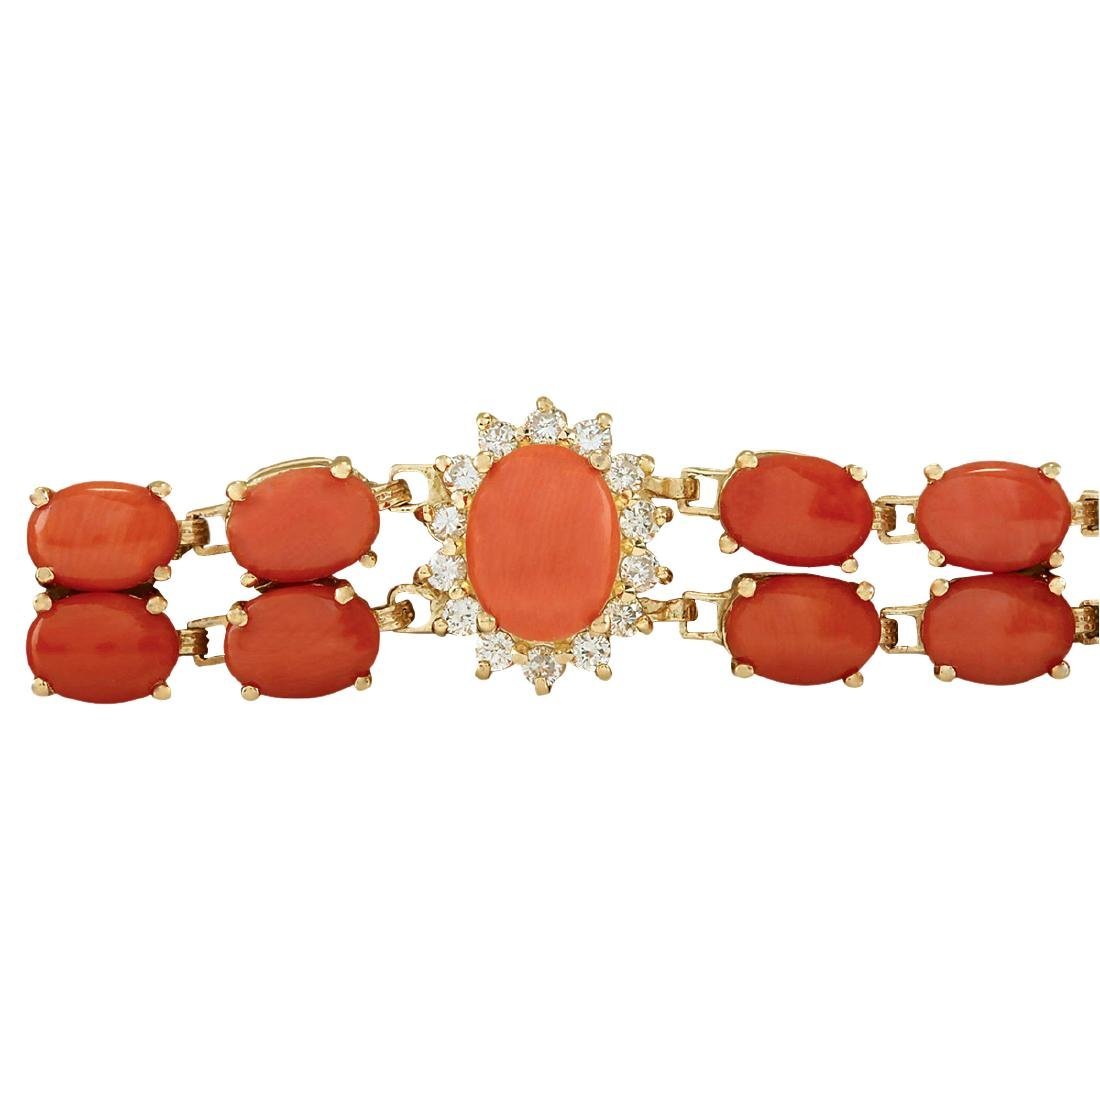 31.50CTW Natural Red Coral And Diamond Bracelet In 18K - 3